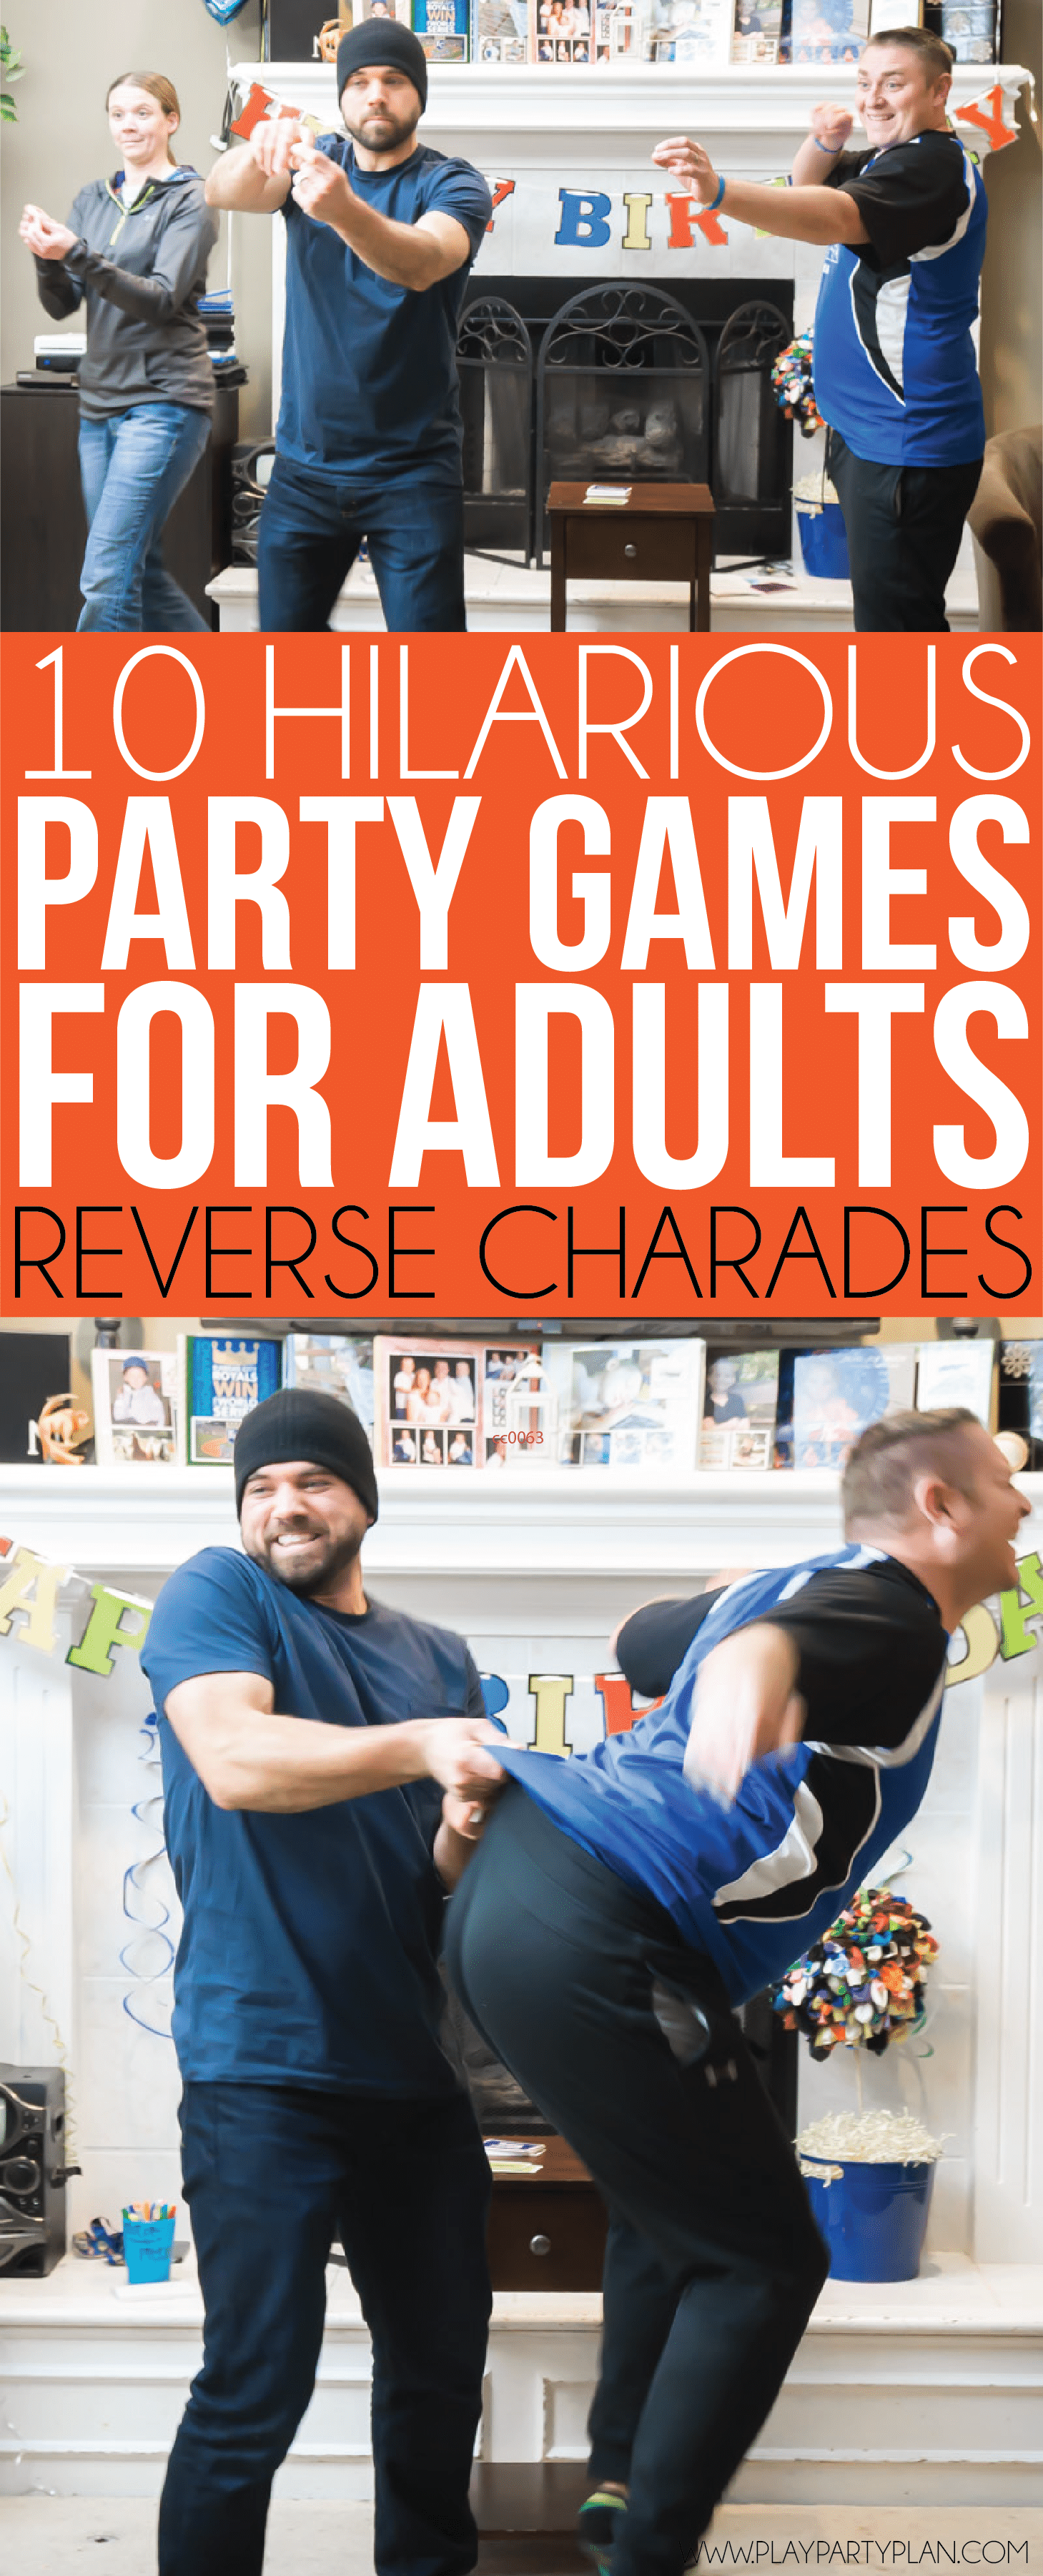 Fun Games For Adult Parties